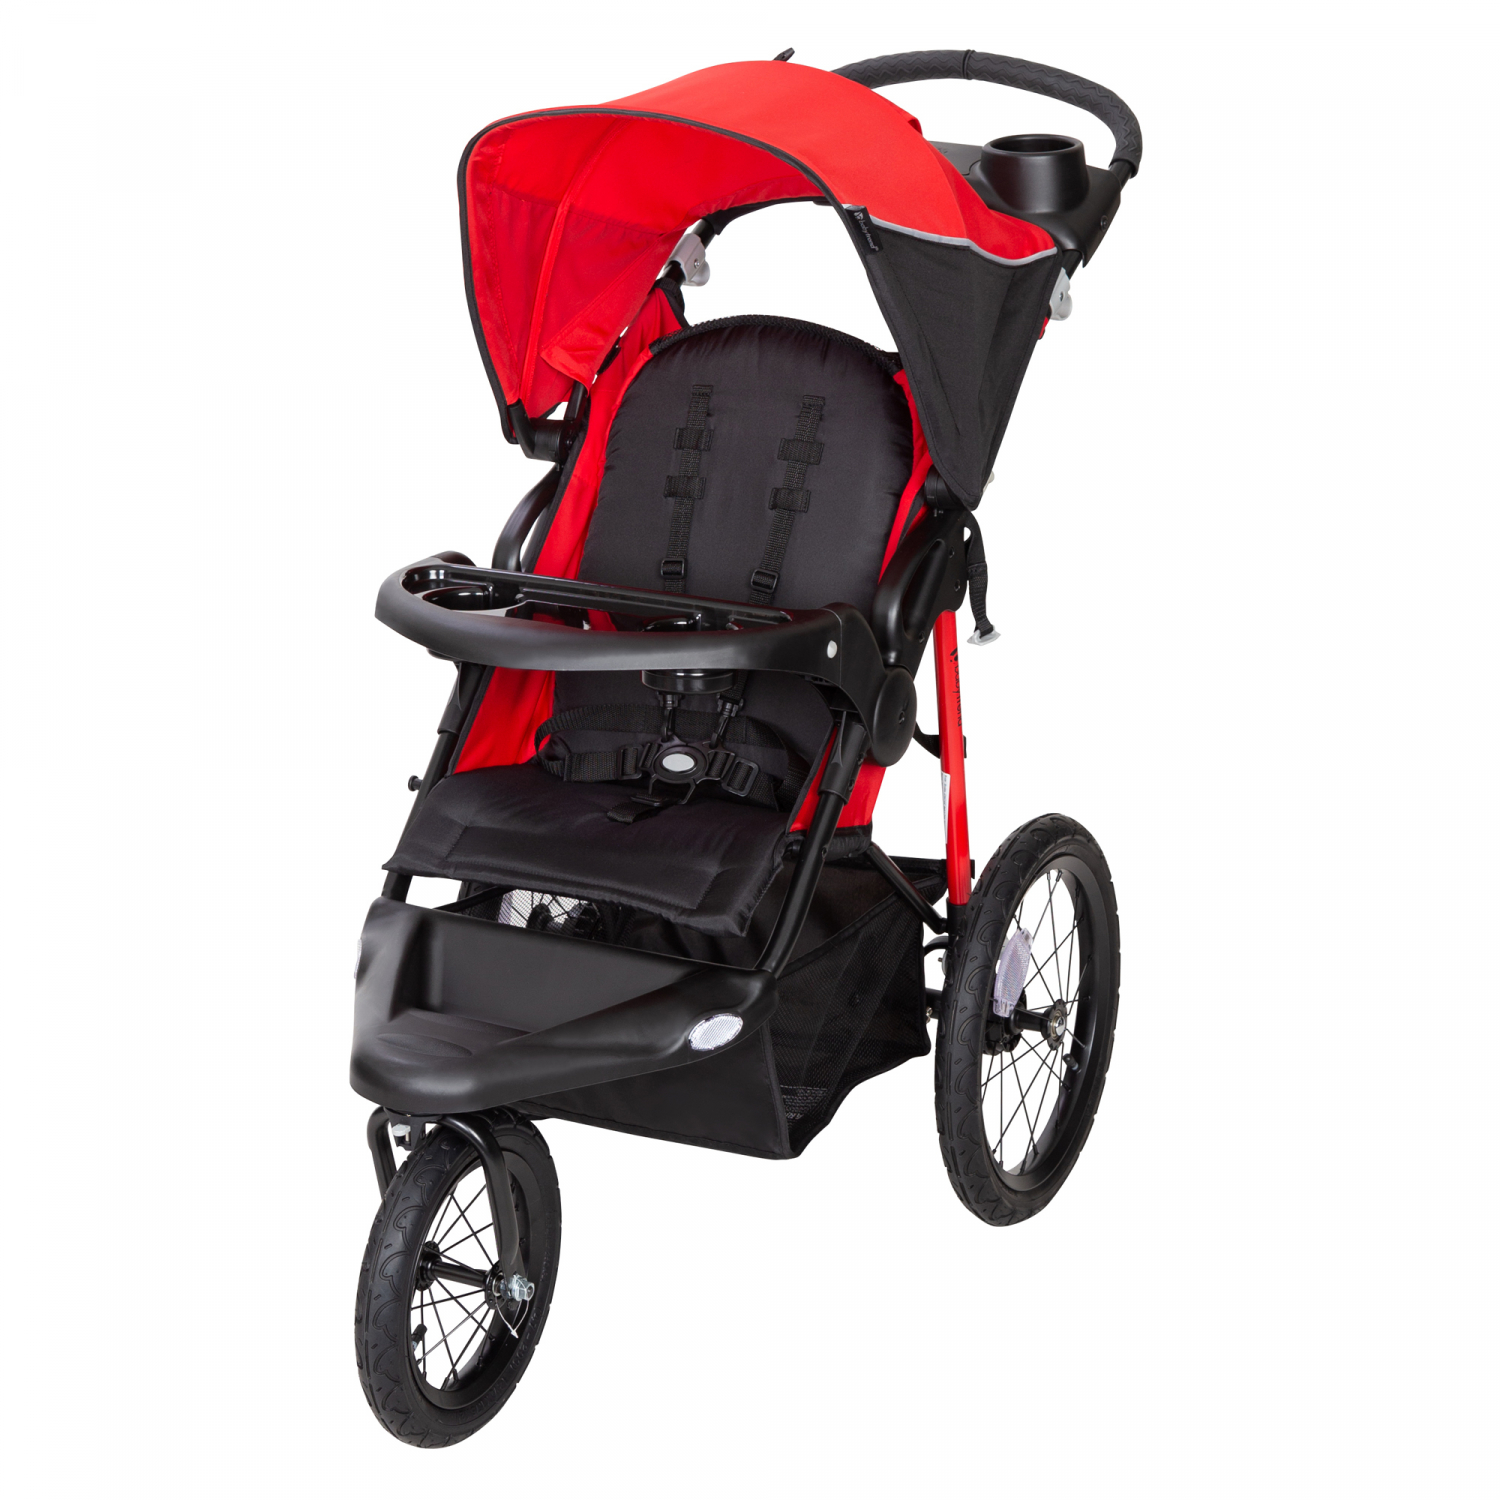 Baby Jogger Stroller 3 Wheel All Terrain Tire Jogging ...